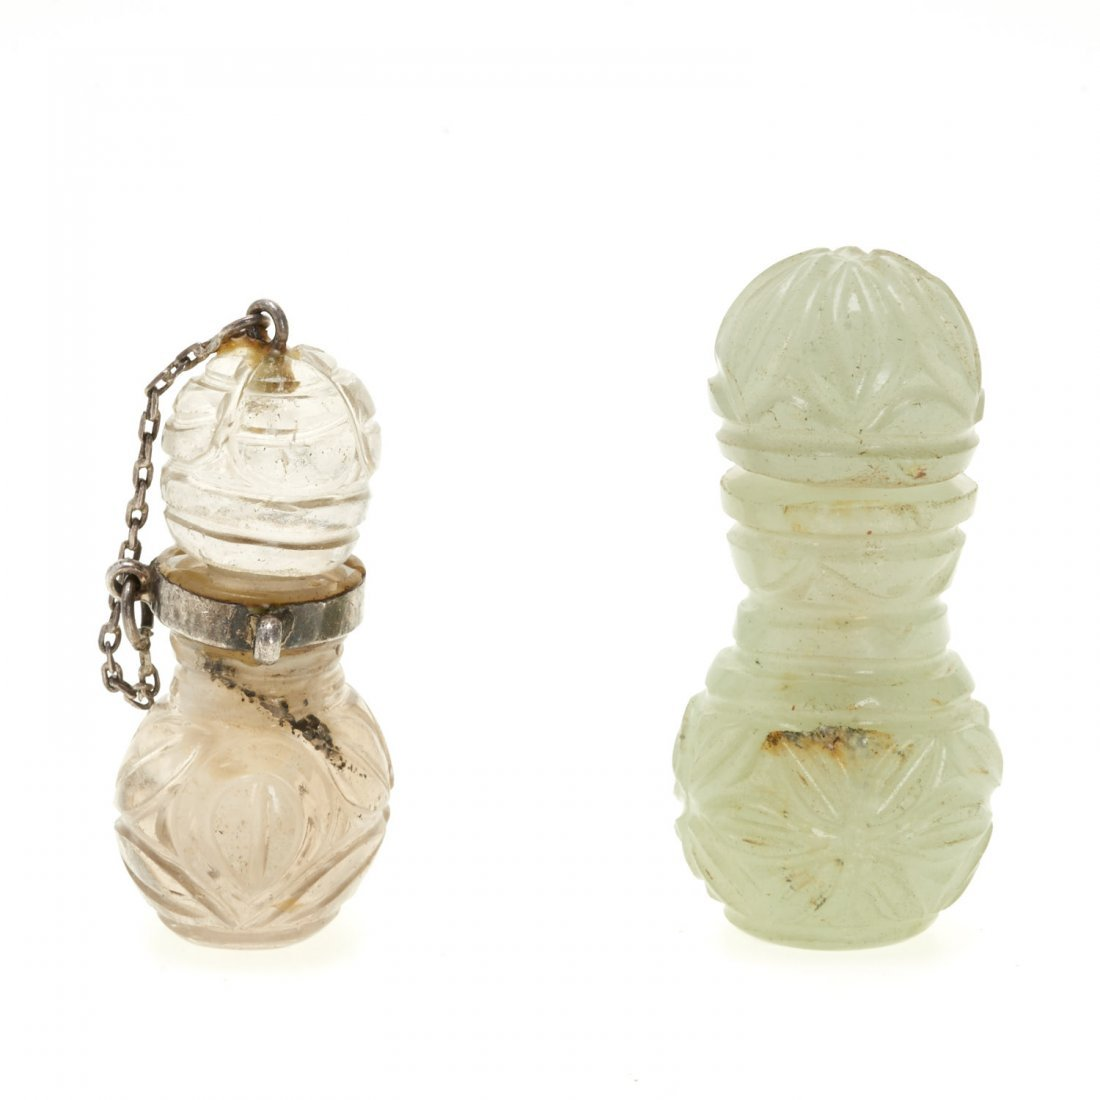 (2) Antique Chinese jade and rock crystal perfumes